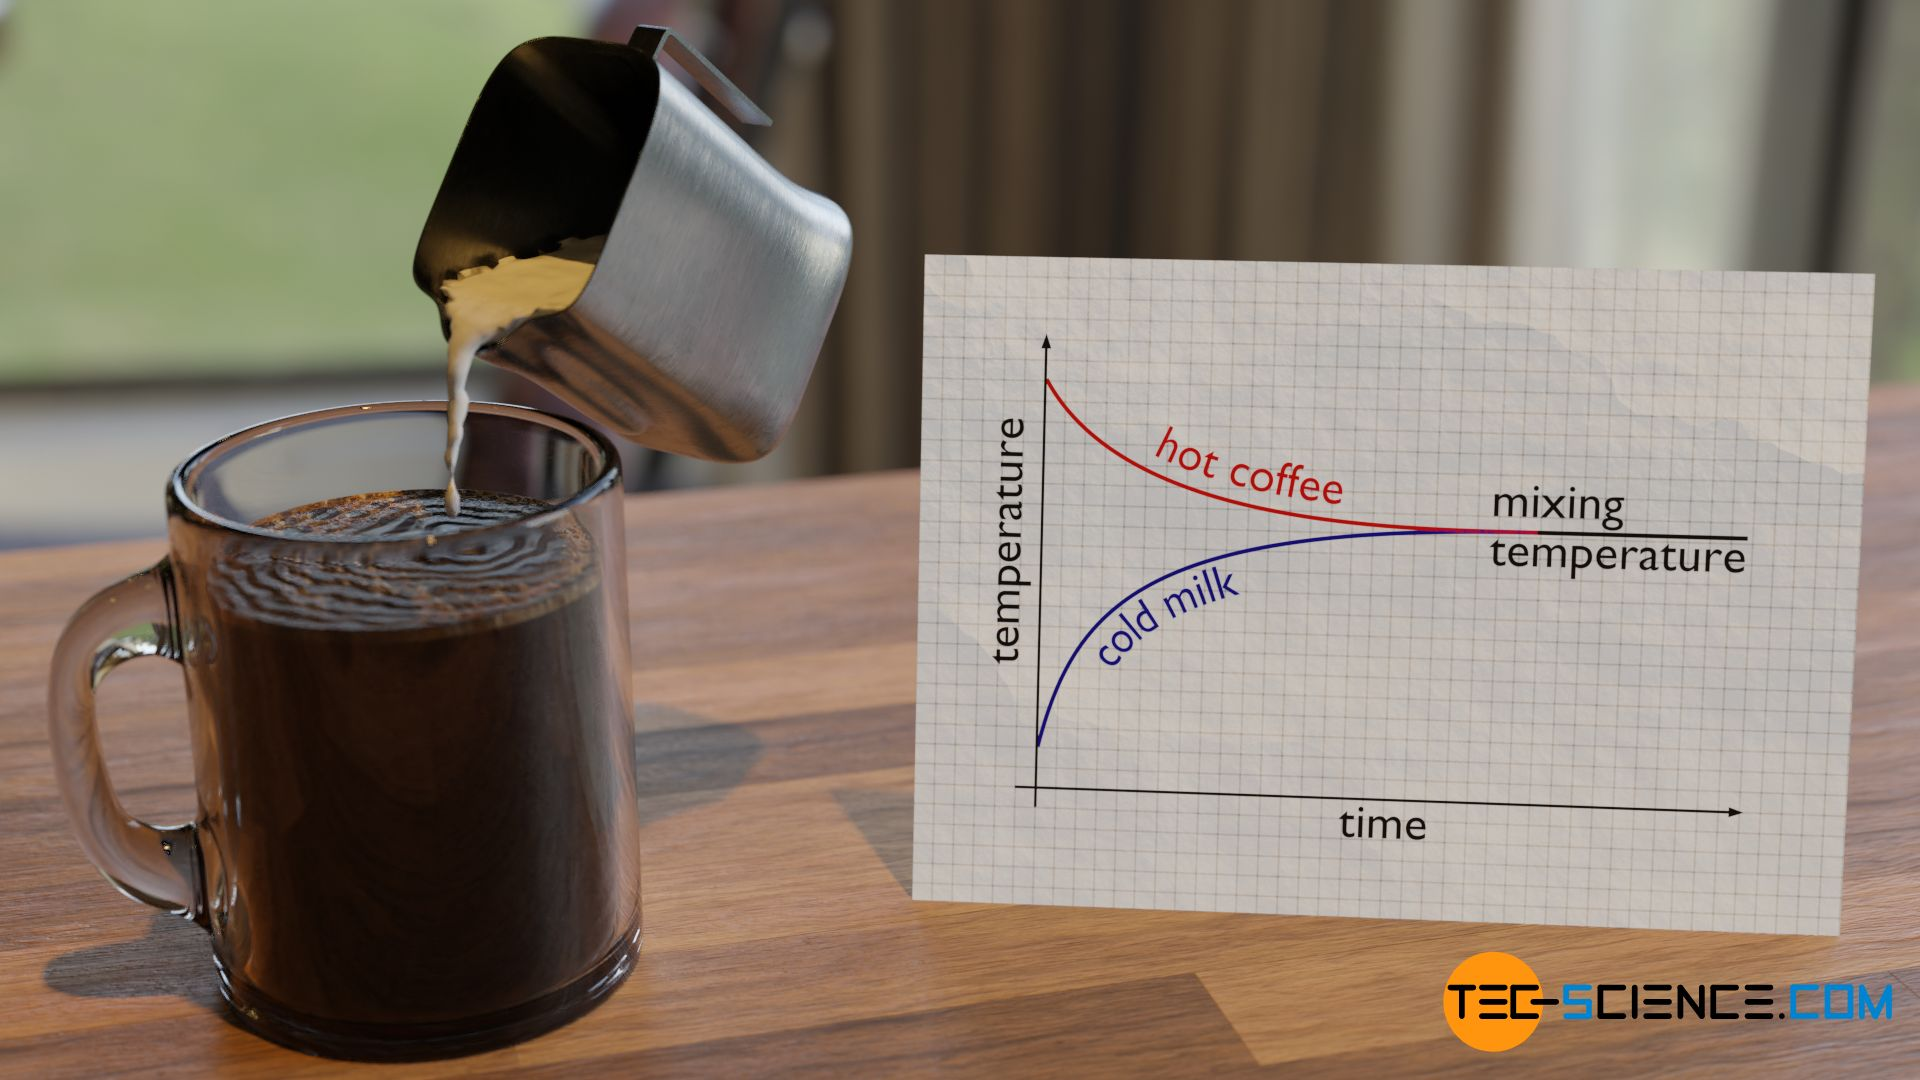 Mixing temperature when pouring cold milk into a cup of hot coffee